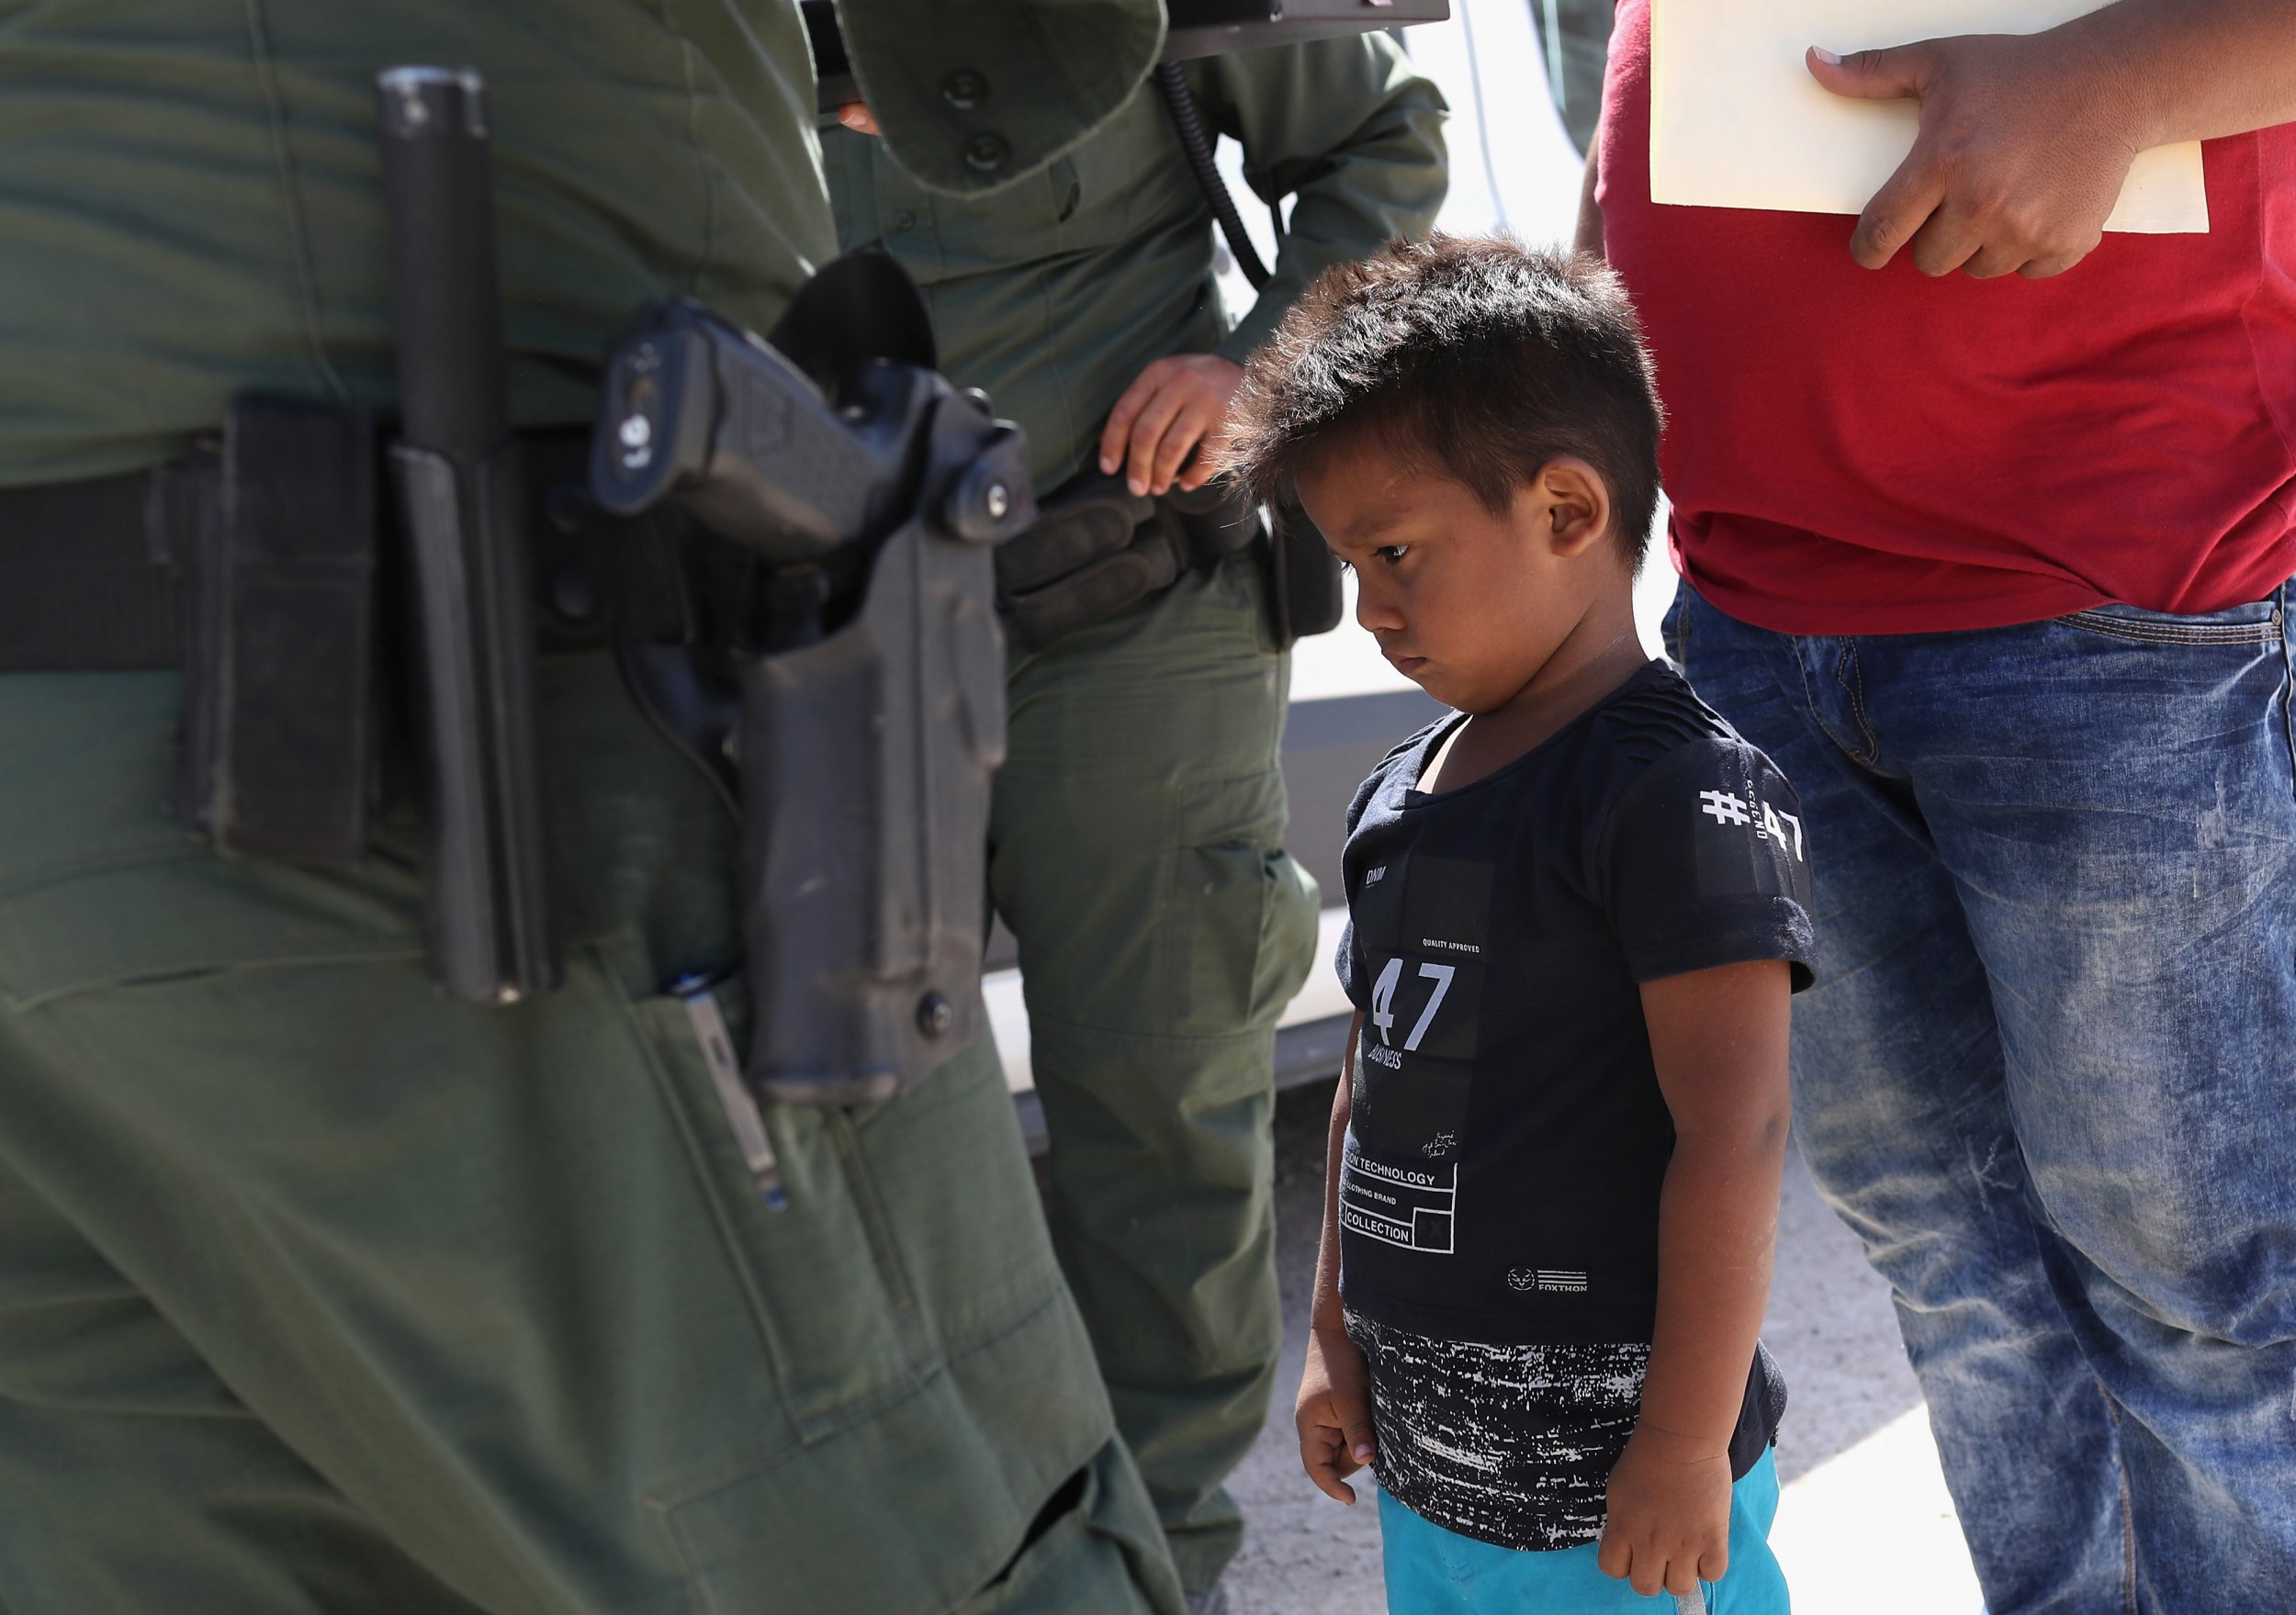 """MISSION, TX - JUNE 12: A boy and father from Honduras are taken into custody by U.S. Border Patrol agents near the U.S.-Mexico Border on June 12, 2018 near Mission, Texas. The asylum seekers were then sent to a U.S. Customs and Border Protection (CBP) processing center for possible separation. U.S. border authorities are executing the Trump administration's """"zero tolerance"""" policy towards undocumented immigrants. U.S. Attorney General Jeff Sessions also said that domestic and gang violence in immigrants' country of origin would no longer qualify them for political asylum status. (Photo by John Moore/Getty Images)"""